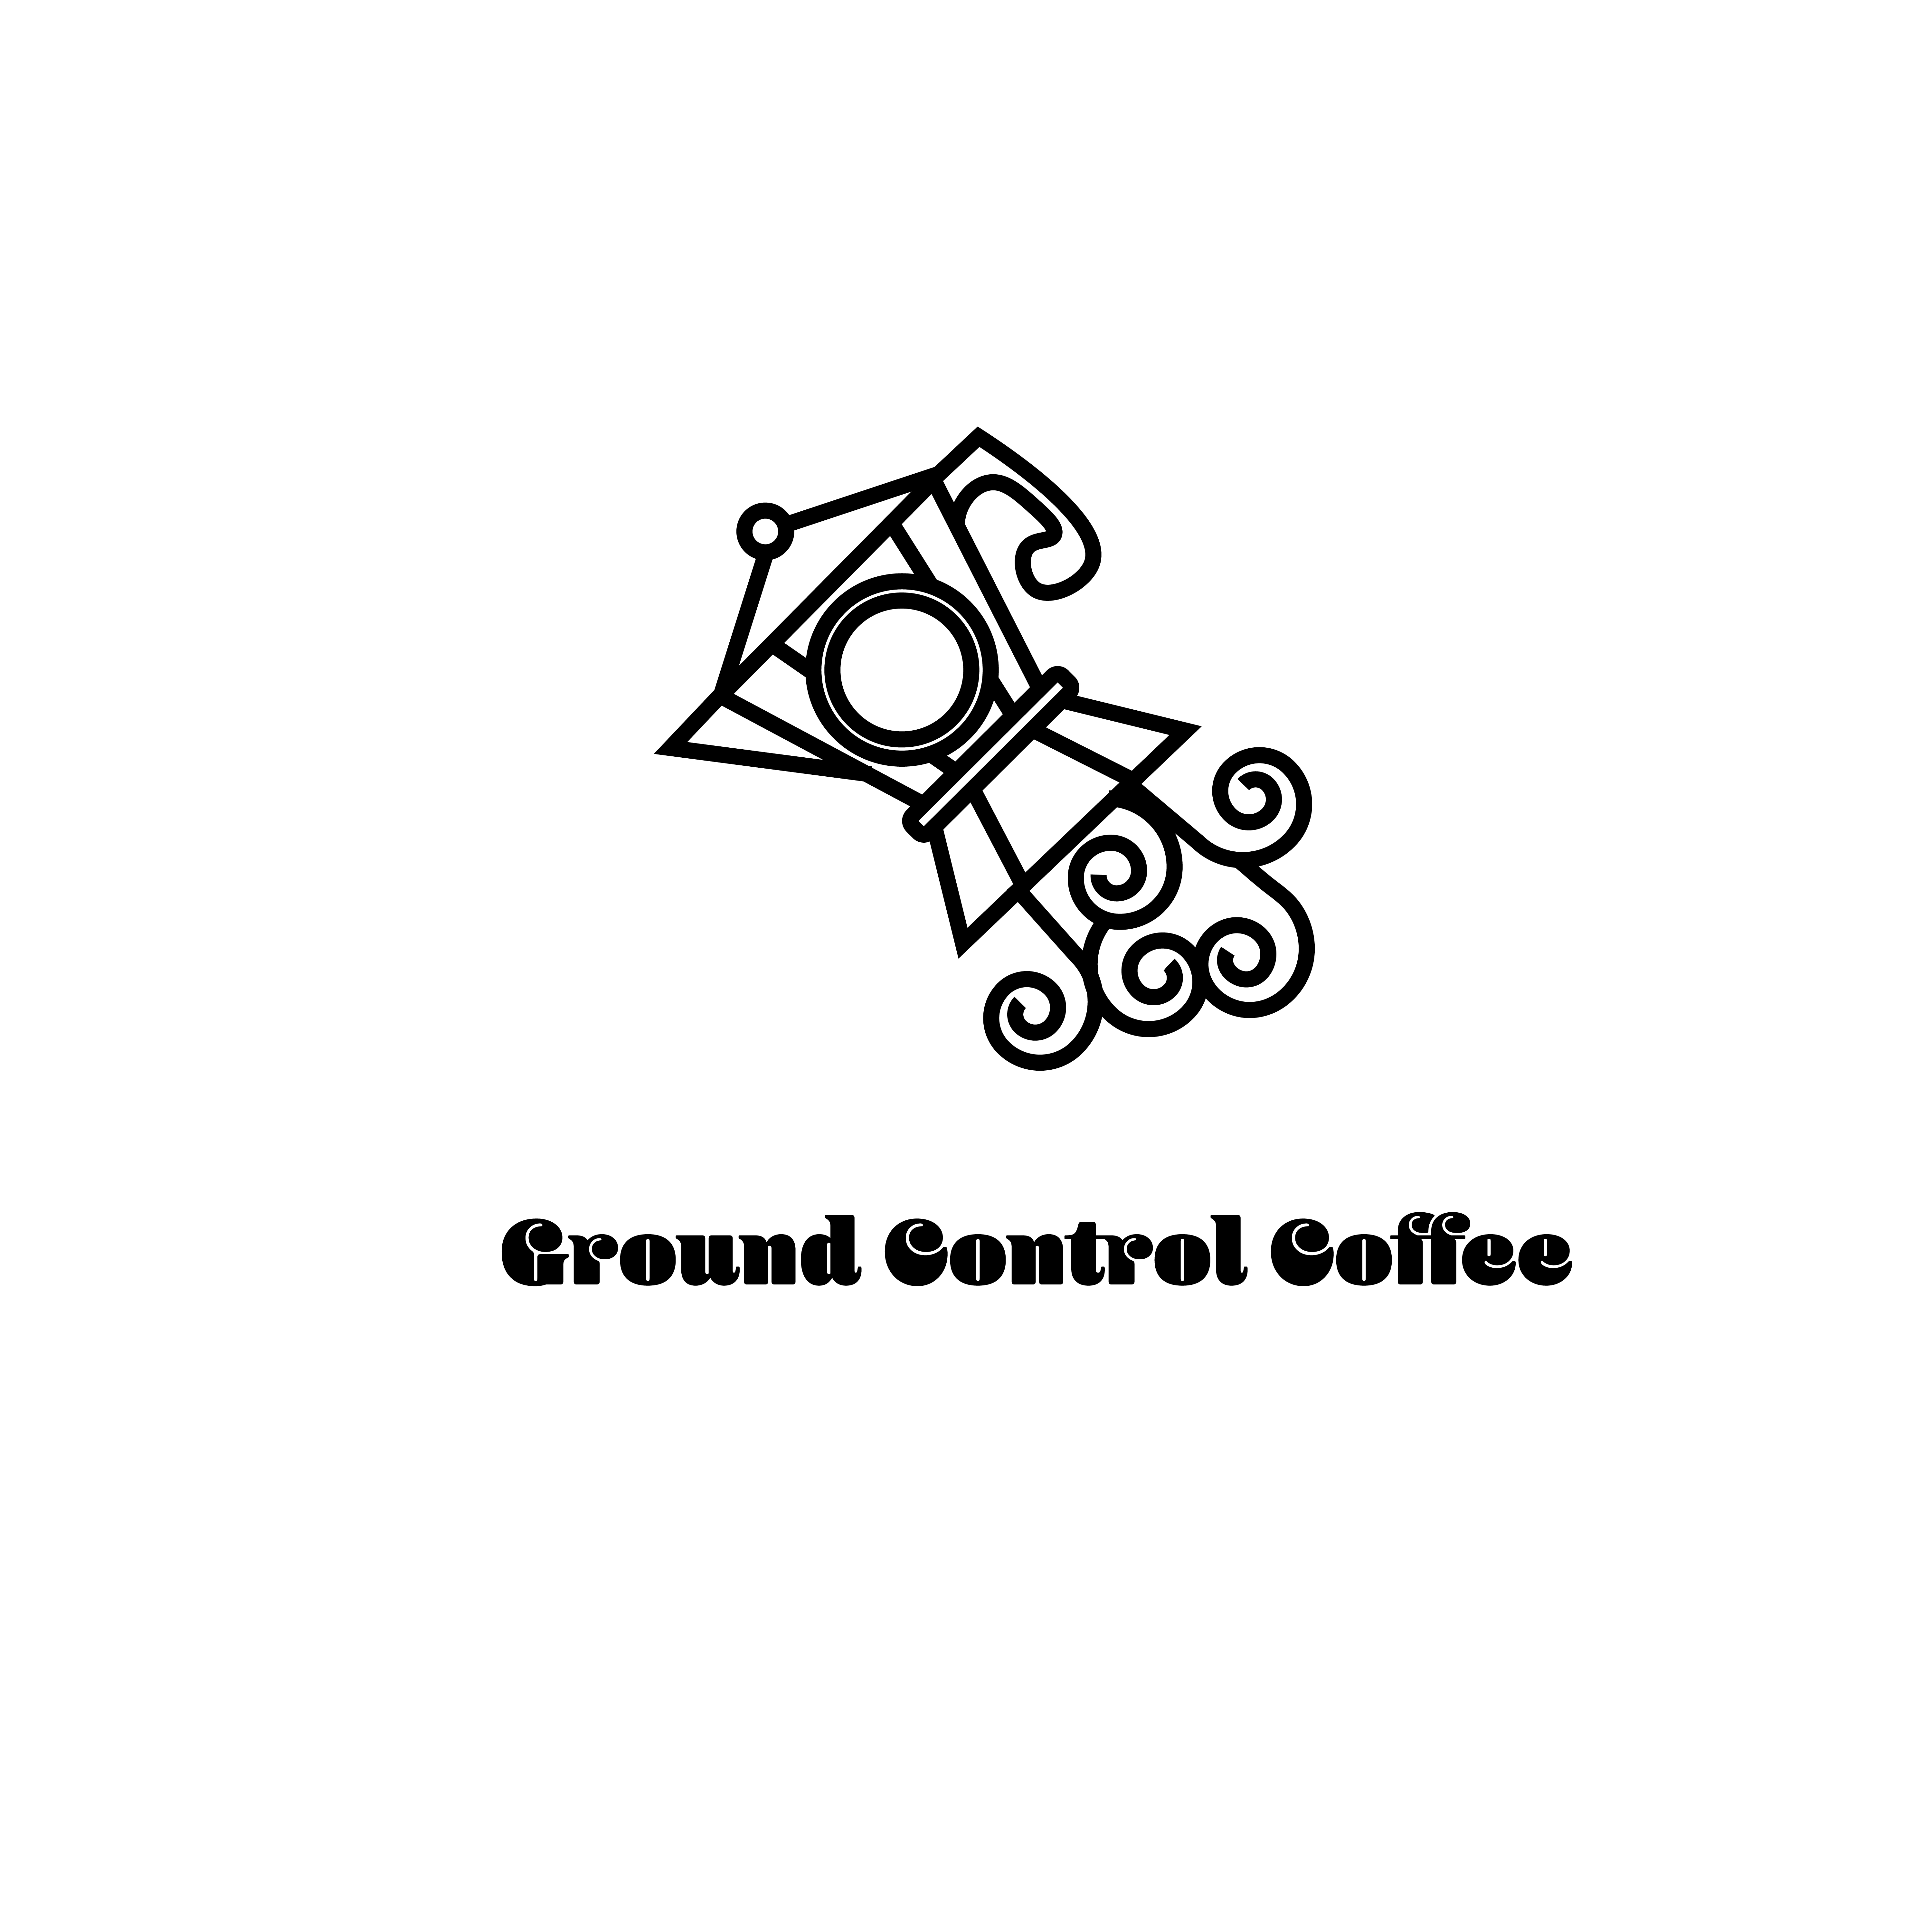 Ground Control Coffee Logo